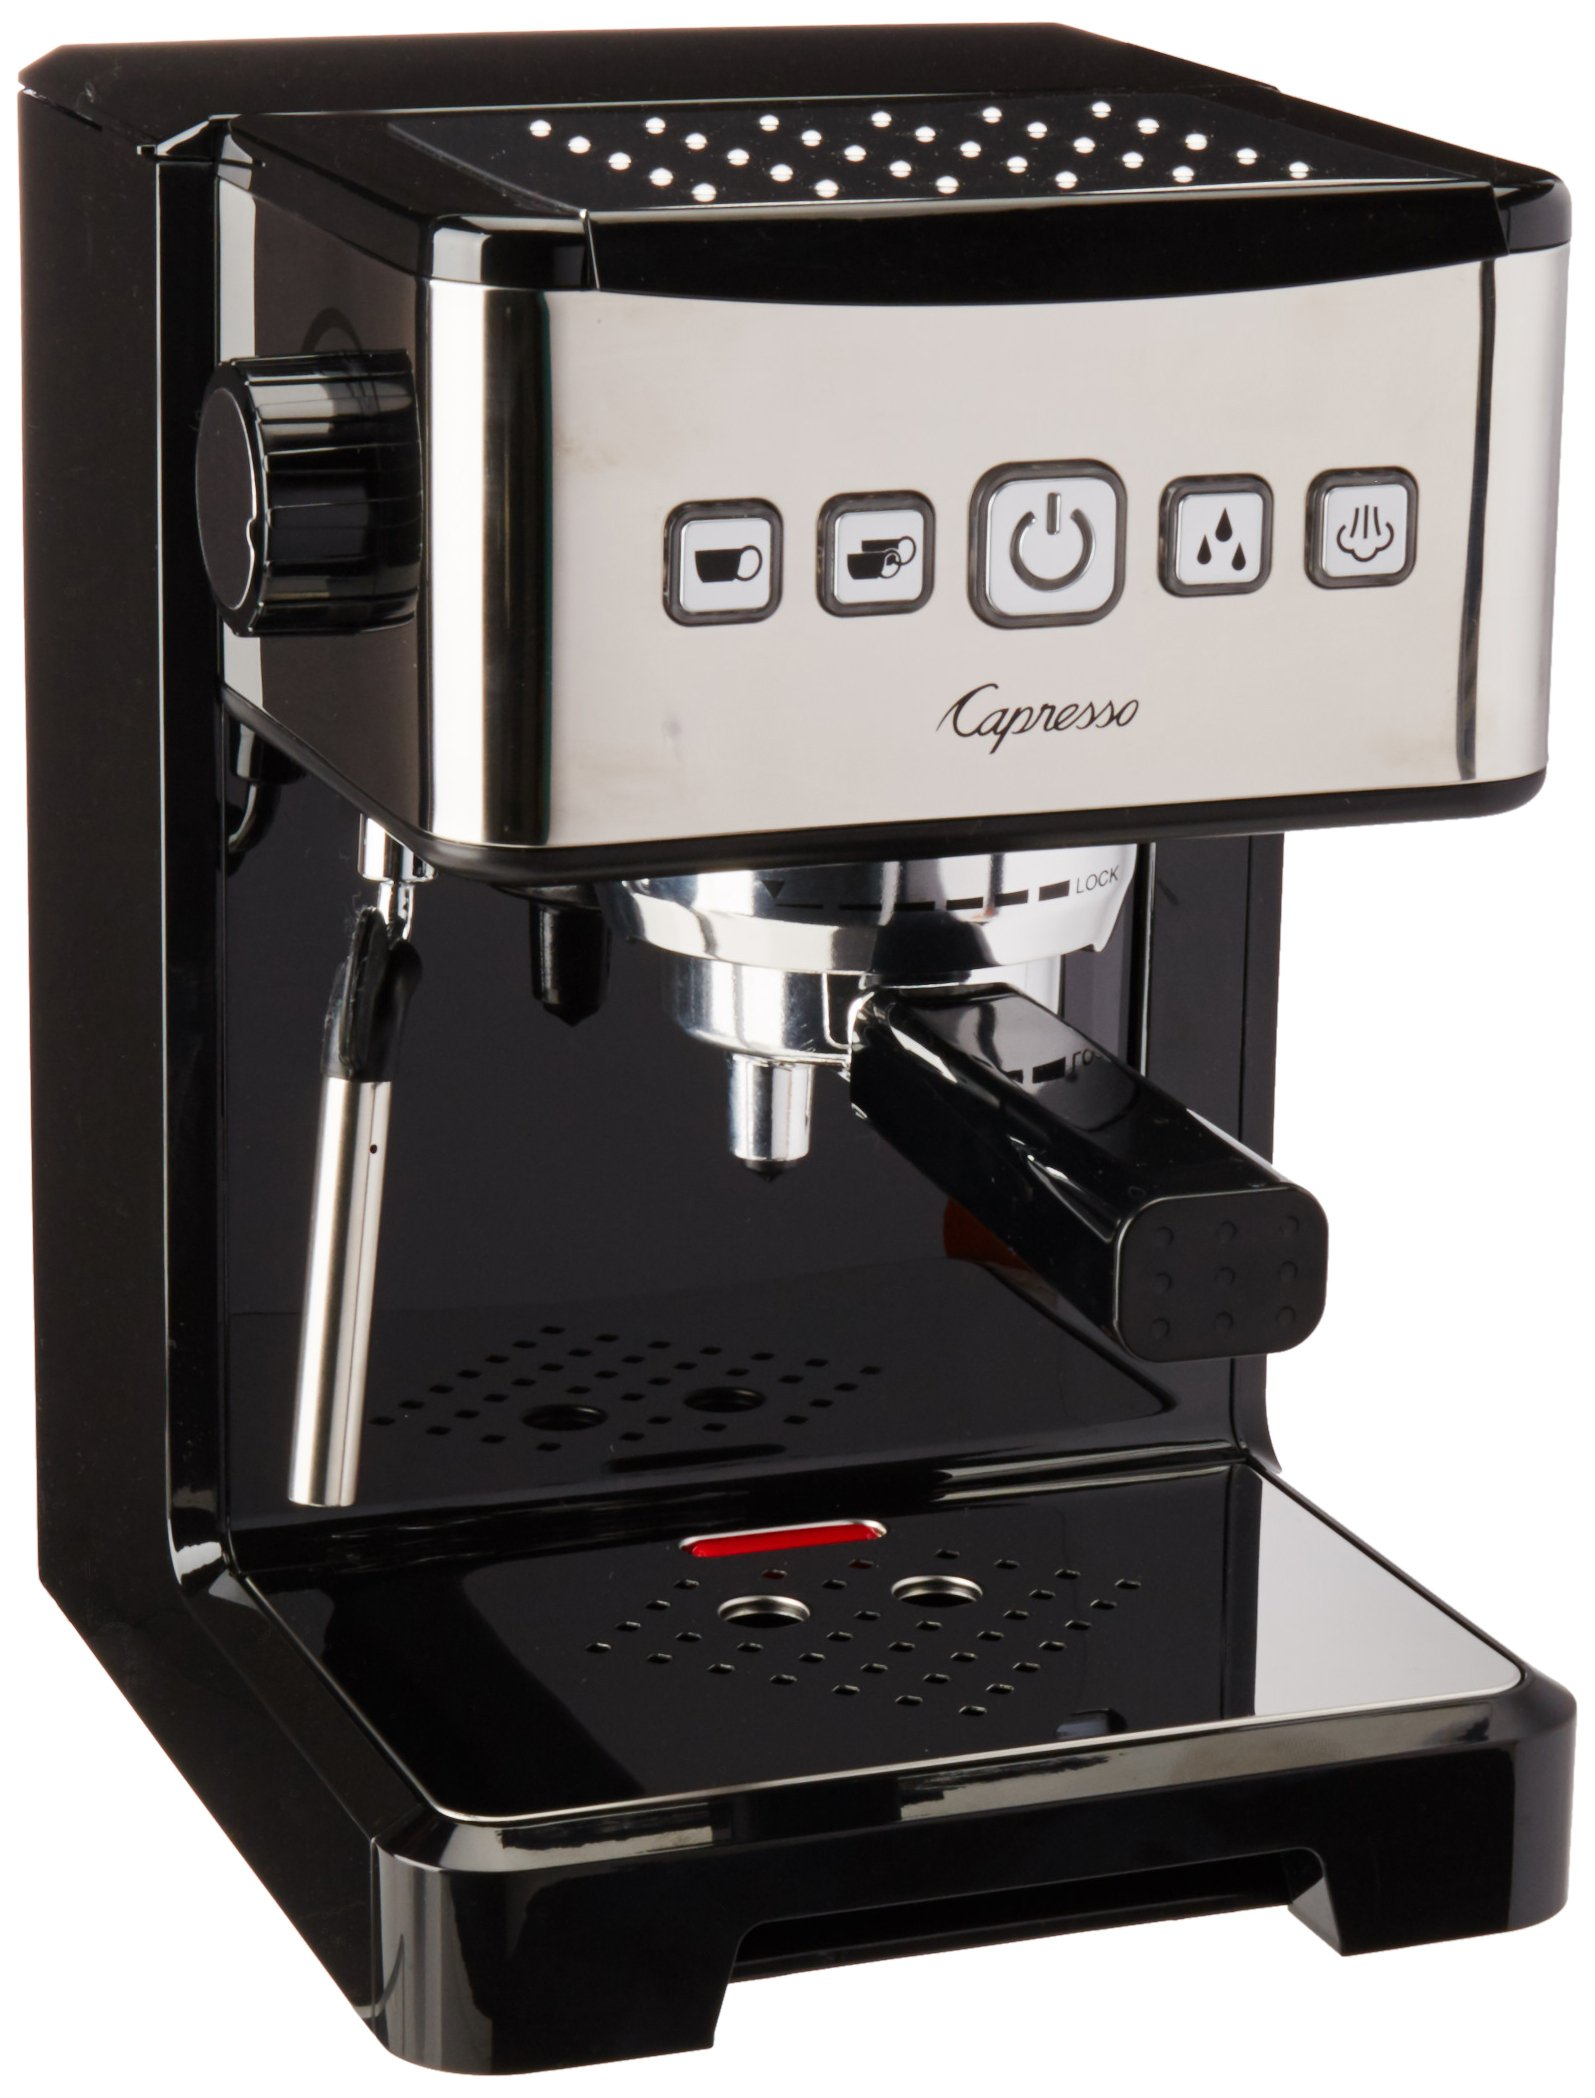 Capresso 124.01 Ultima Pro Programmable Pump Espresso Machine by Capresso